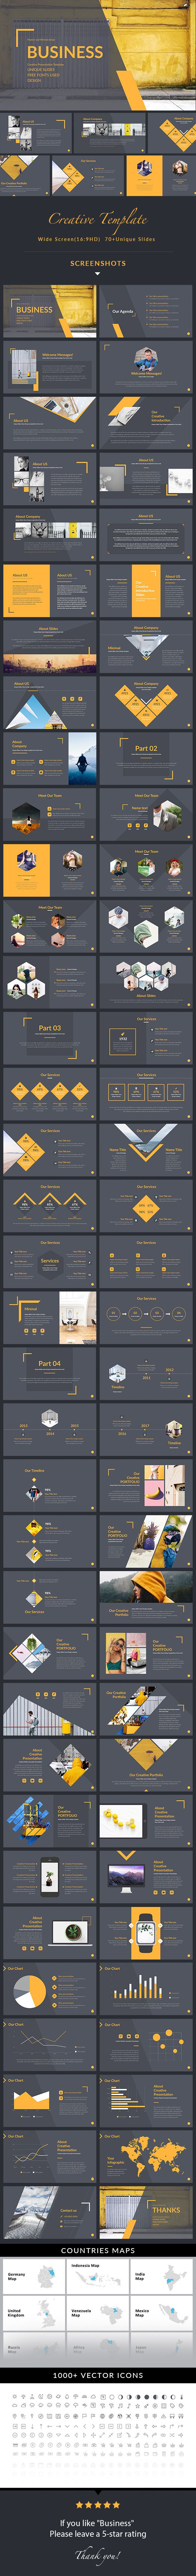 Business - Simple Multipurpose #Powerpoint Template - Business PowerPoint #Templates Download here:  https://graphicriver.net/item/business-simple-multipurpose-powerpoint-template/20363632?ref=alena994